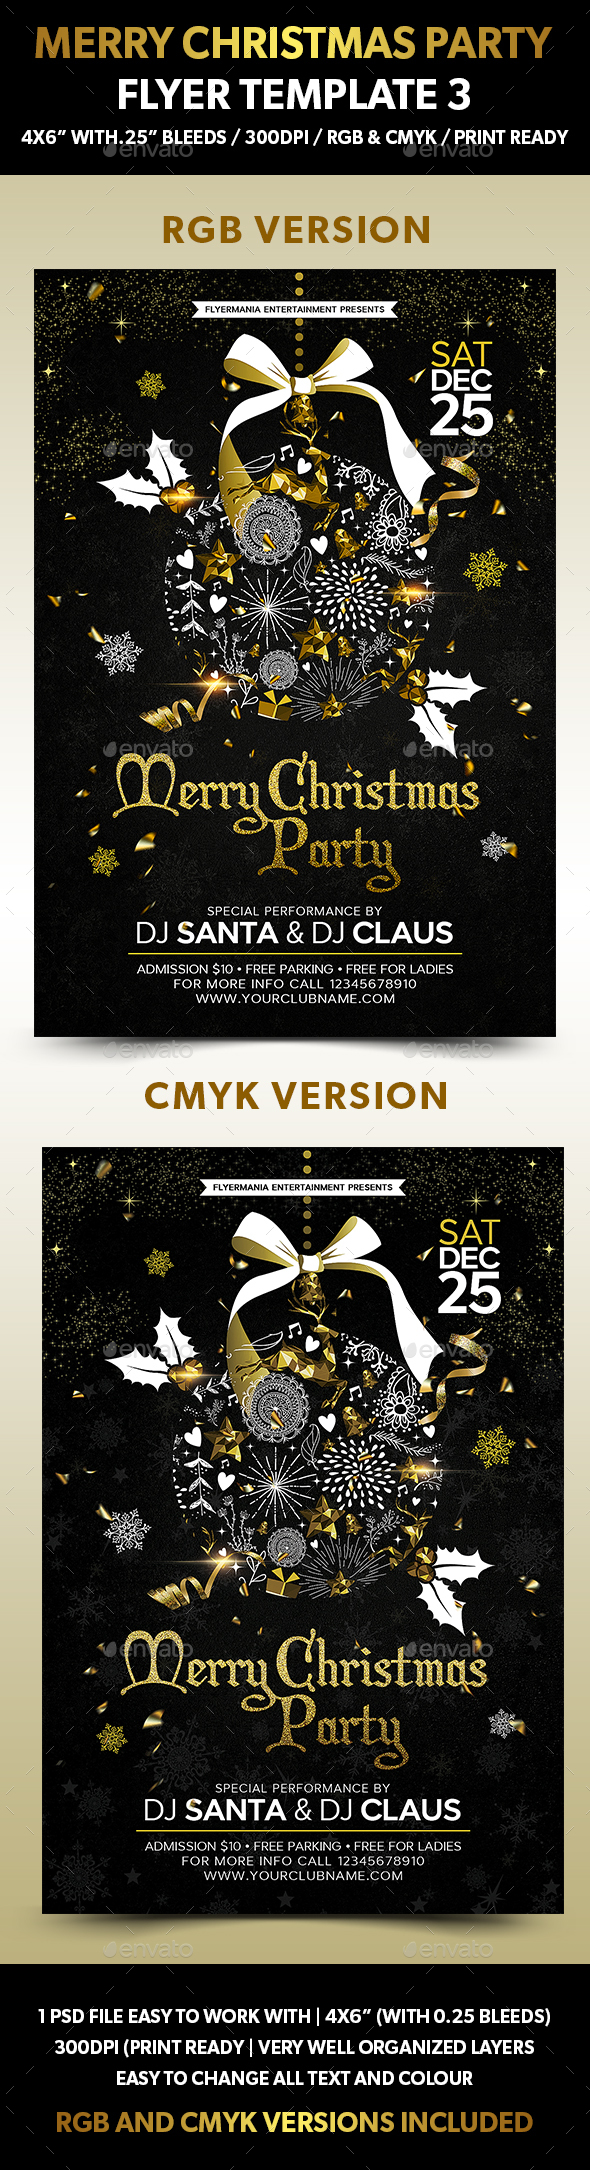 Merry Christmas Party Flyer Template 3